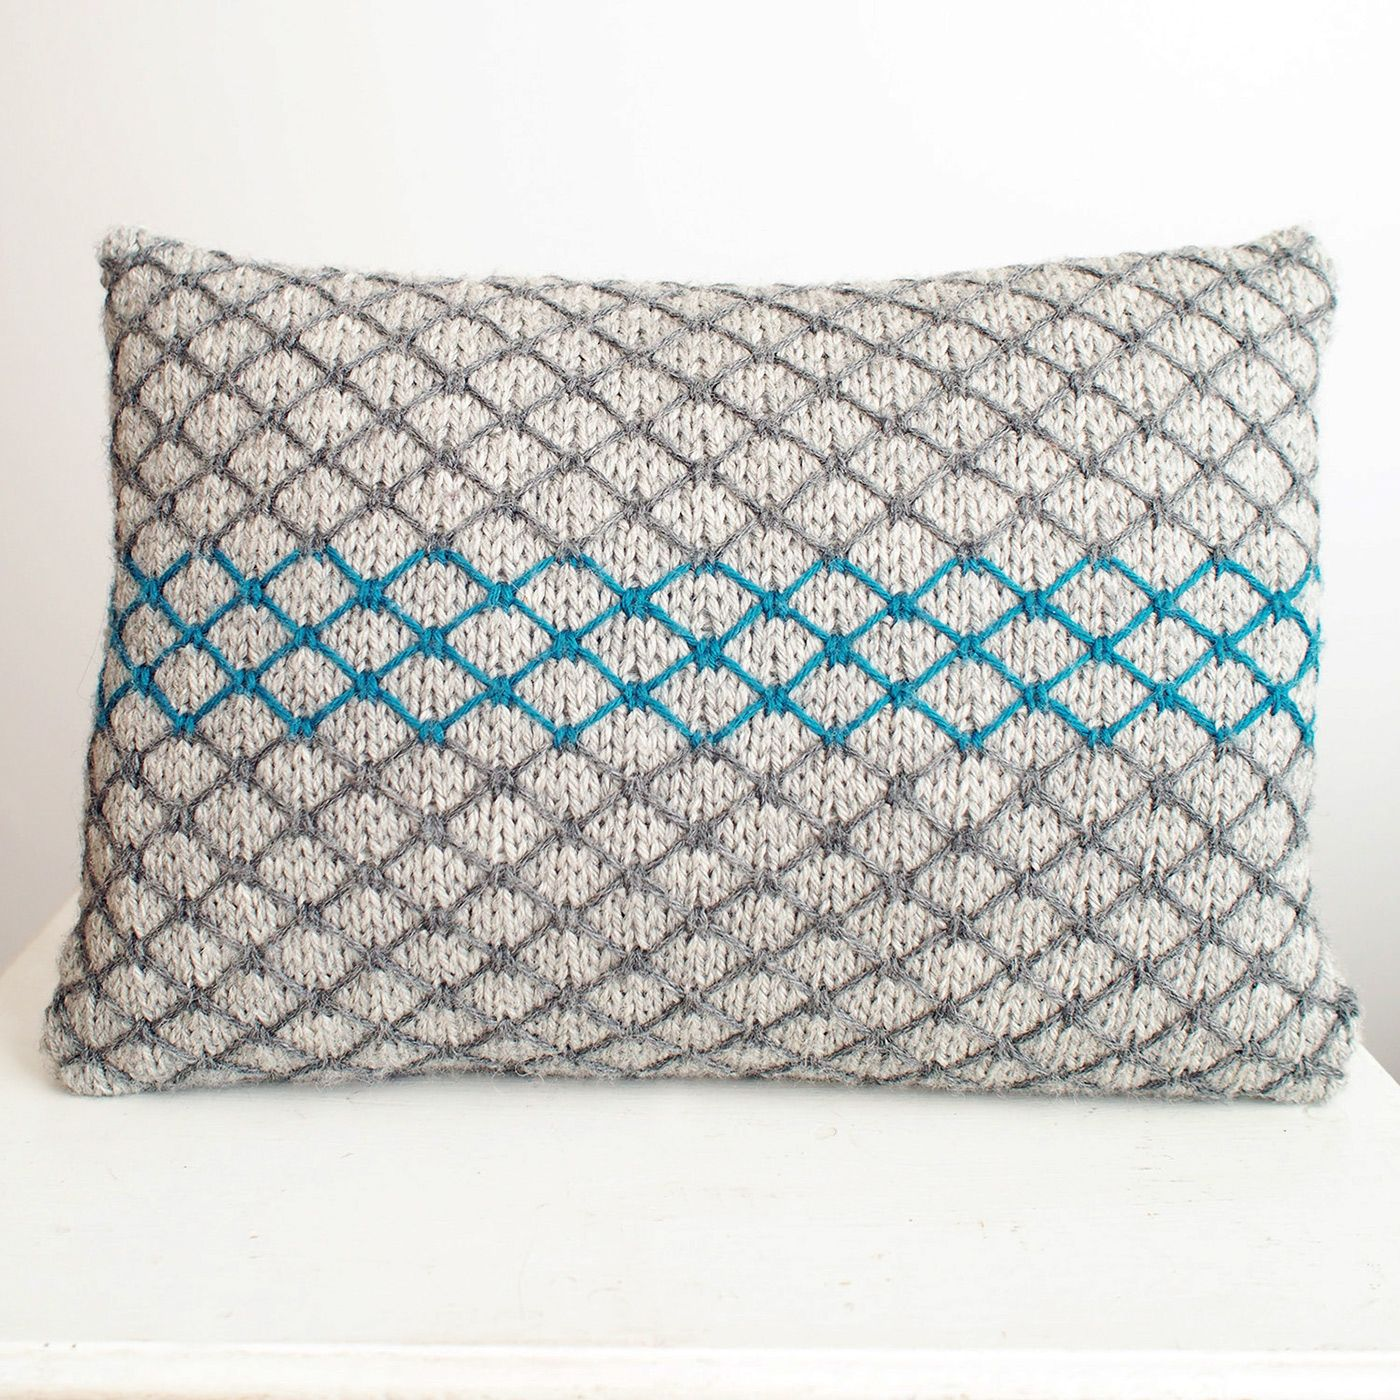 Dayana knits my first home deco design the chainlink cushion all